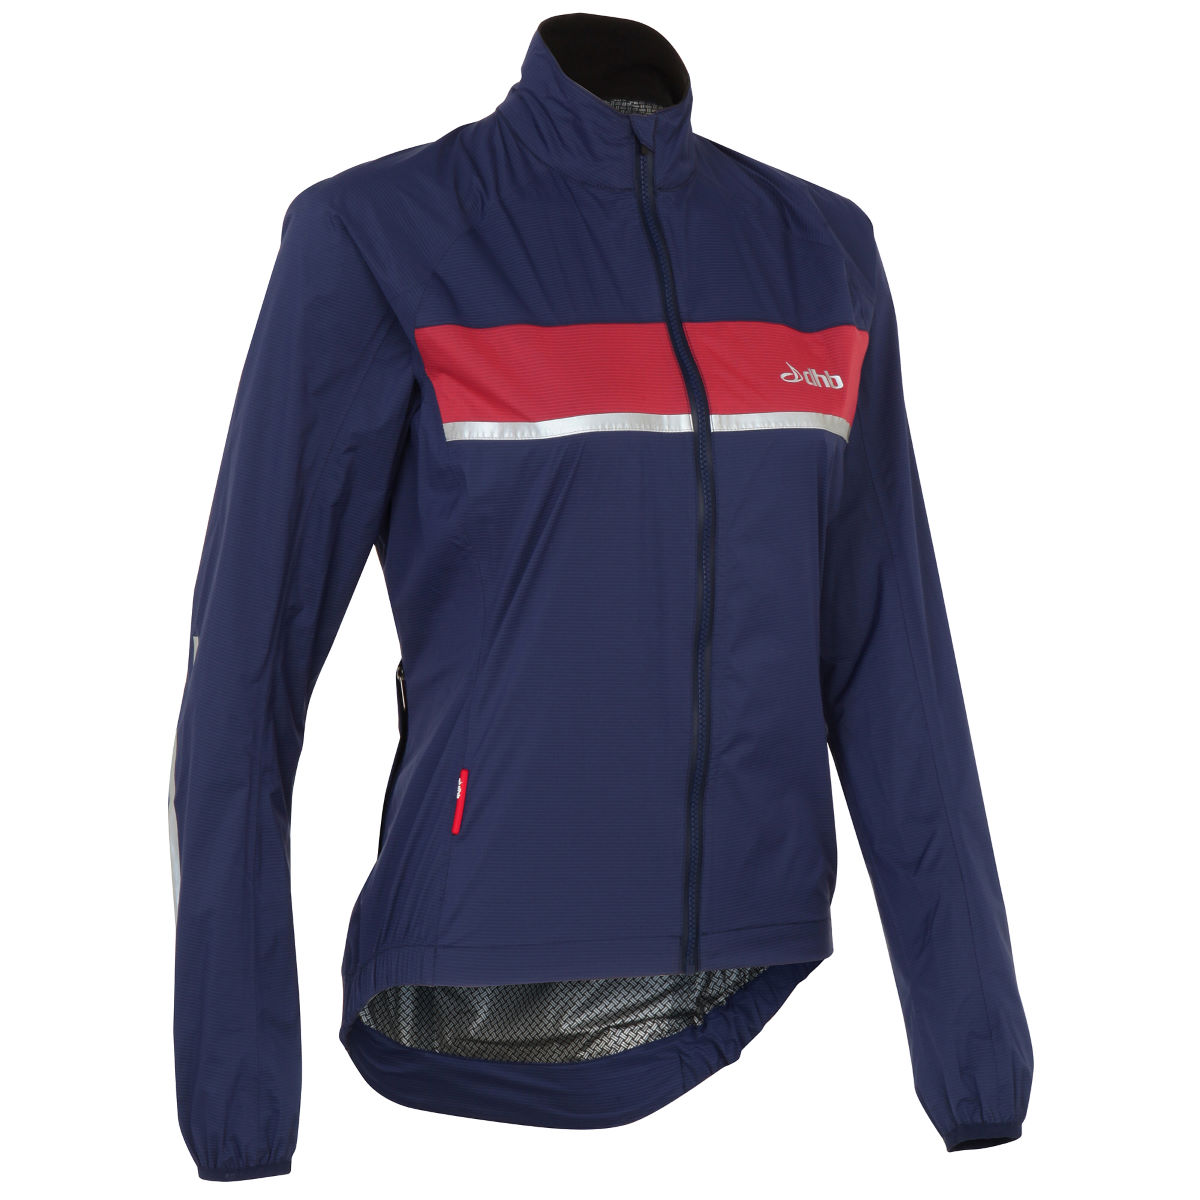 Chaqueta dhb Classic Rain Shell para mujer - Impermeables - ciclismo